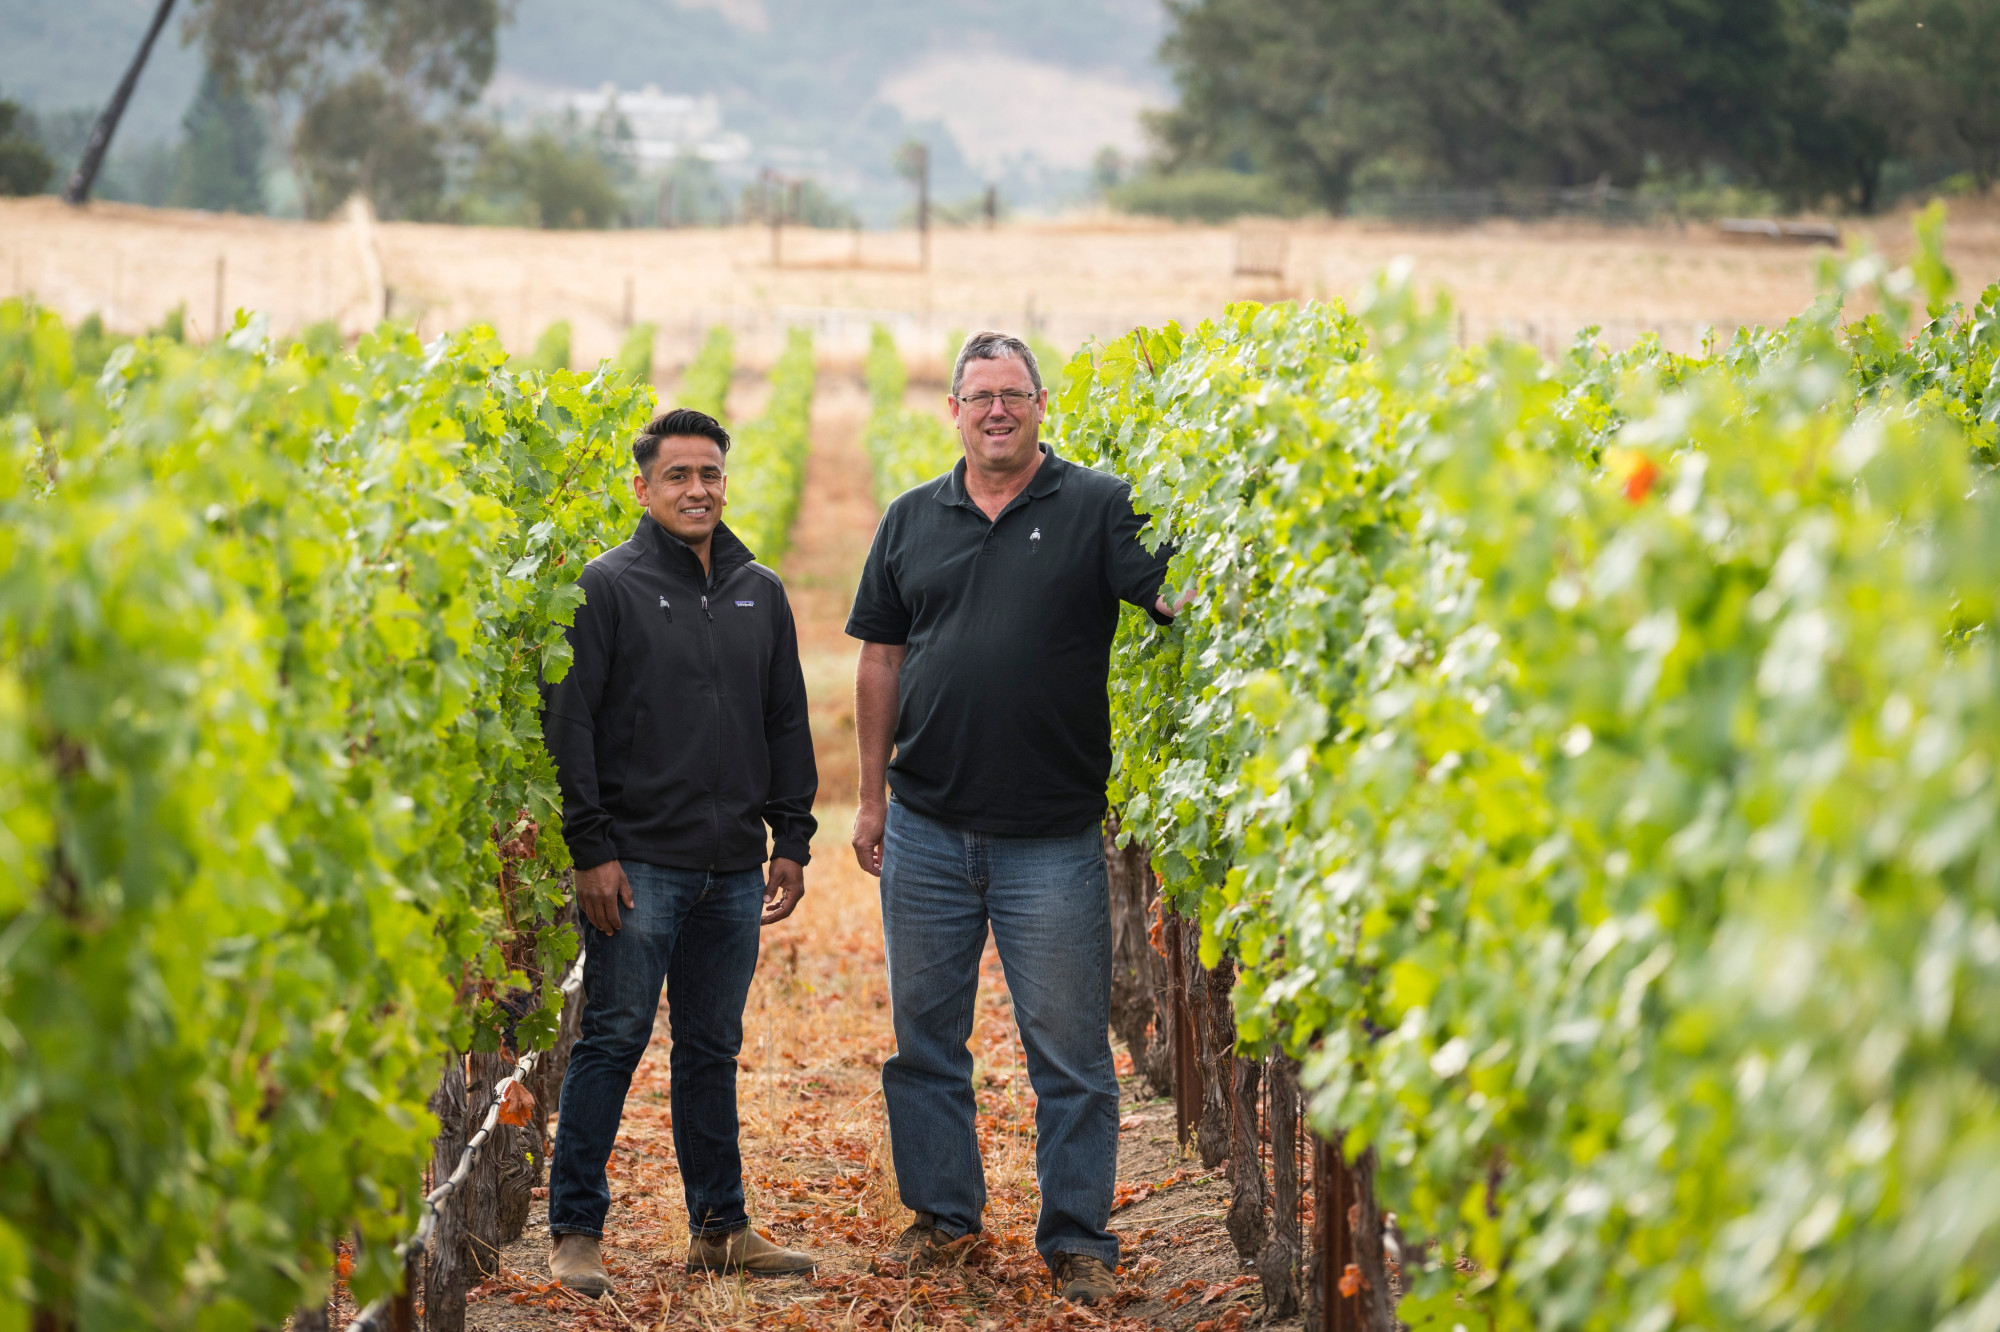 Pete Richmond/Miguel Luna: provided by Silverado Farming; photographer was Suzanne Becker Bronk